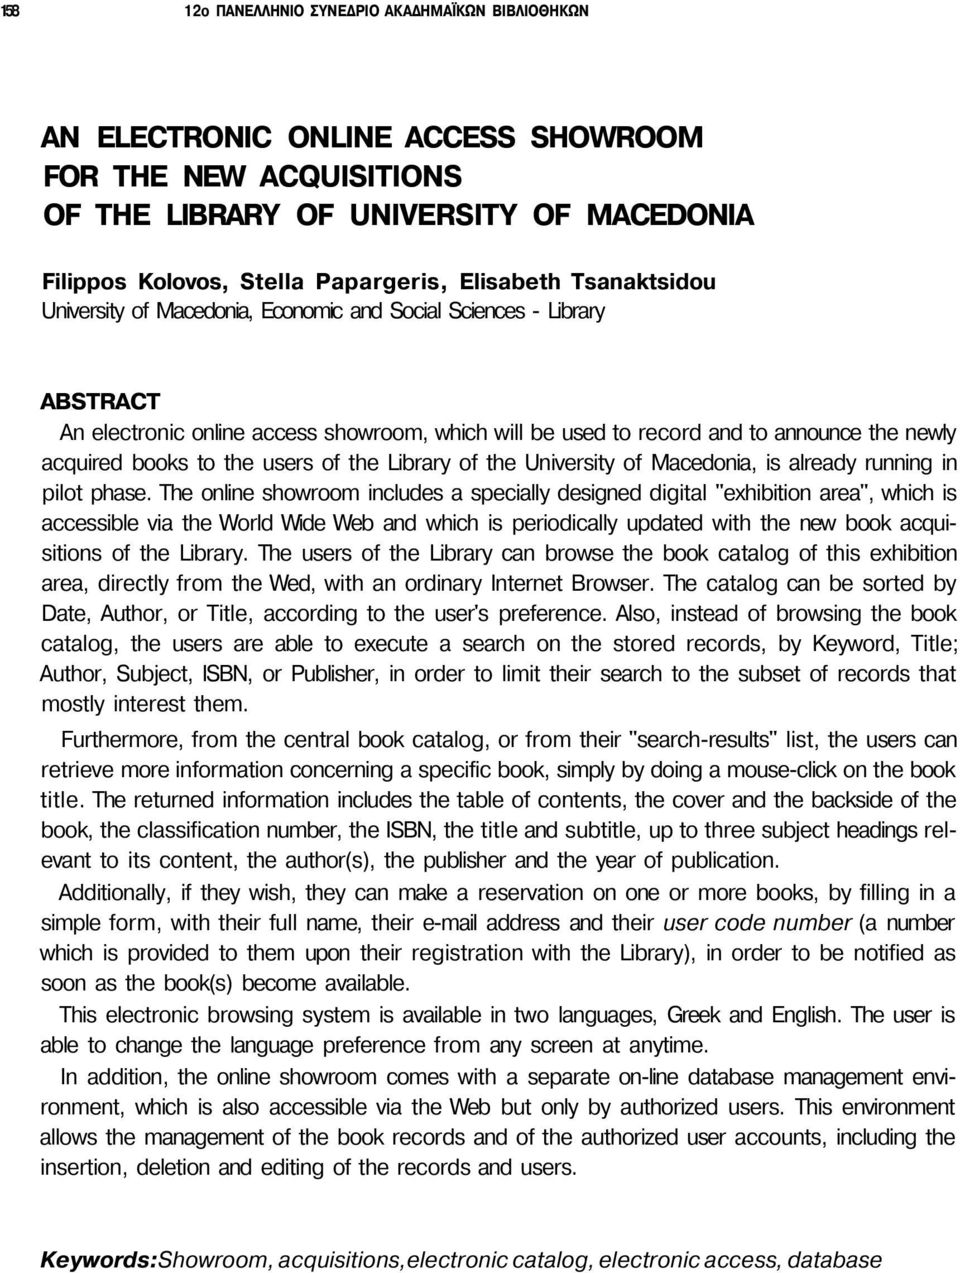 books to the users of the Library of the University of Macedonia, is already running in pilot phase.